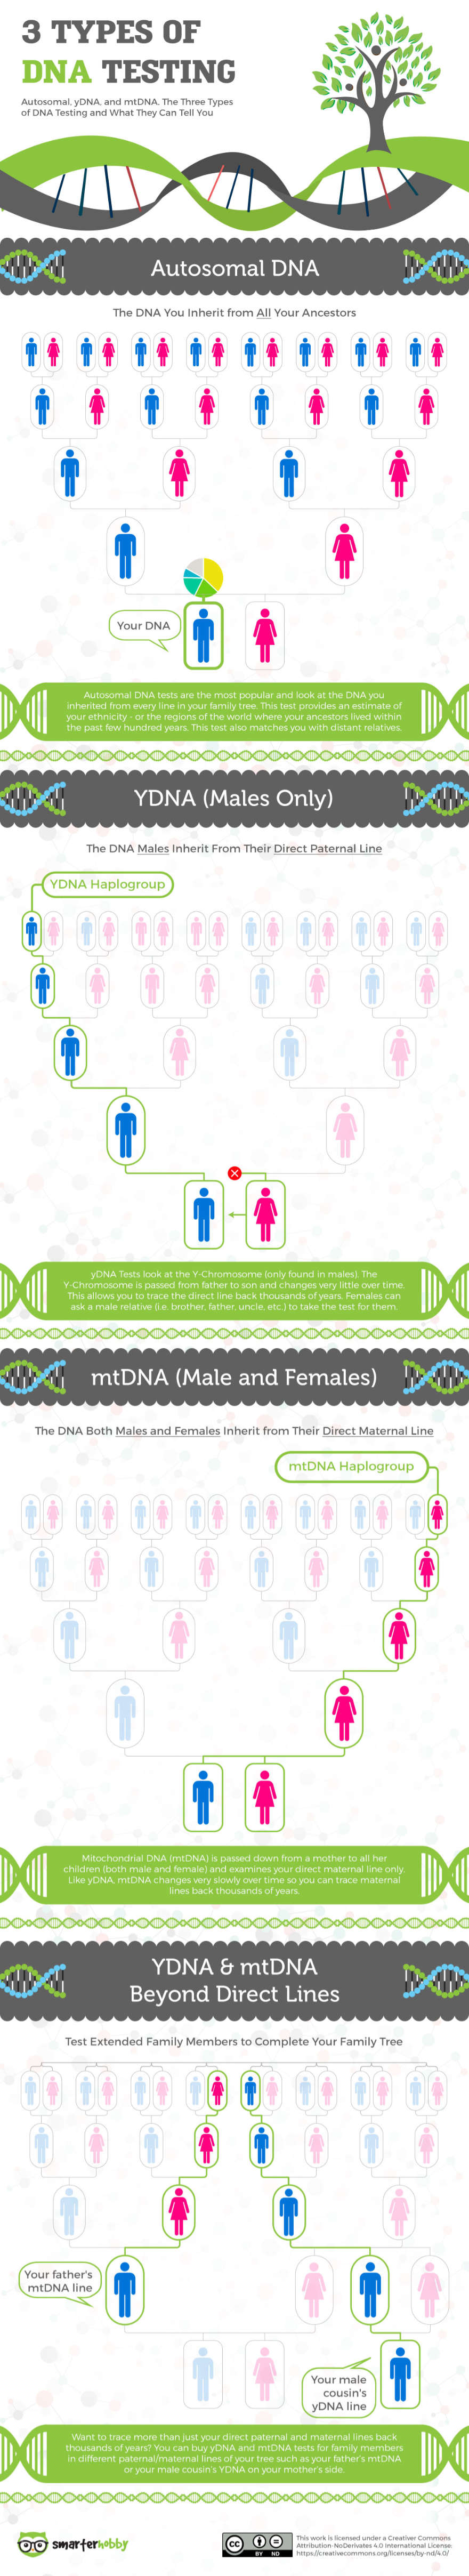 most accurate dna test for ancestry